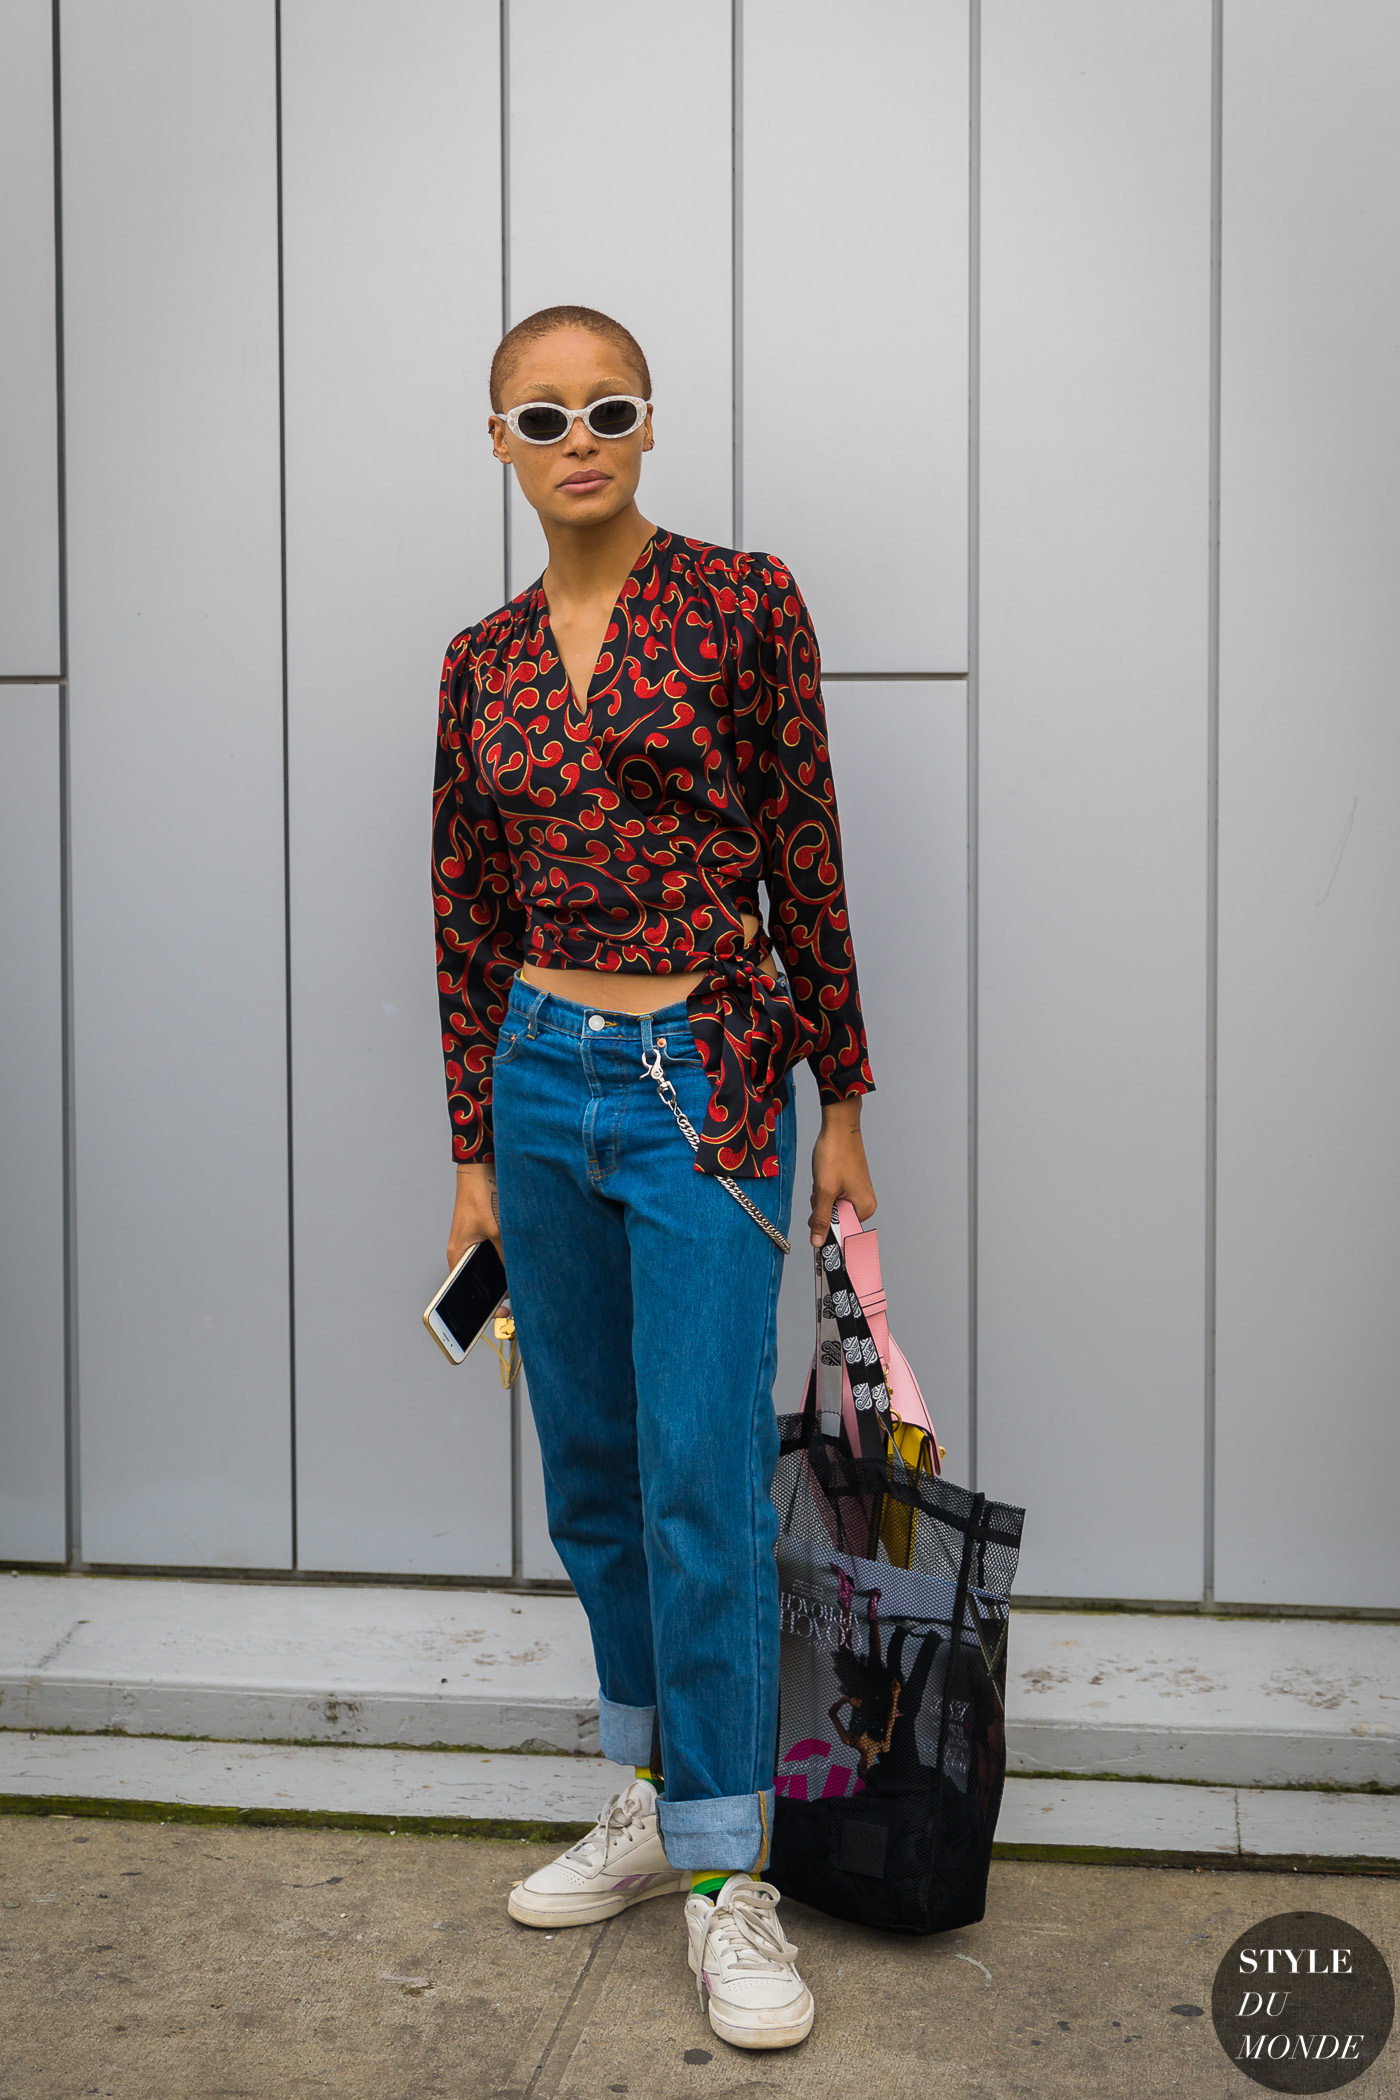 Adwoa Aboah by STYLEDUMONDE Street Style Fashion Photography